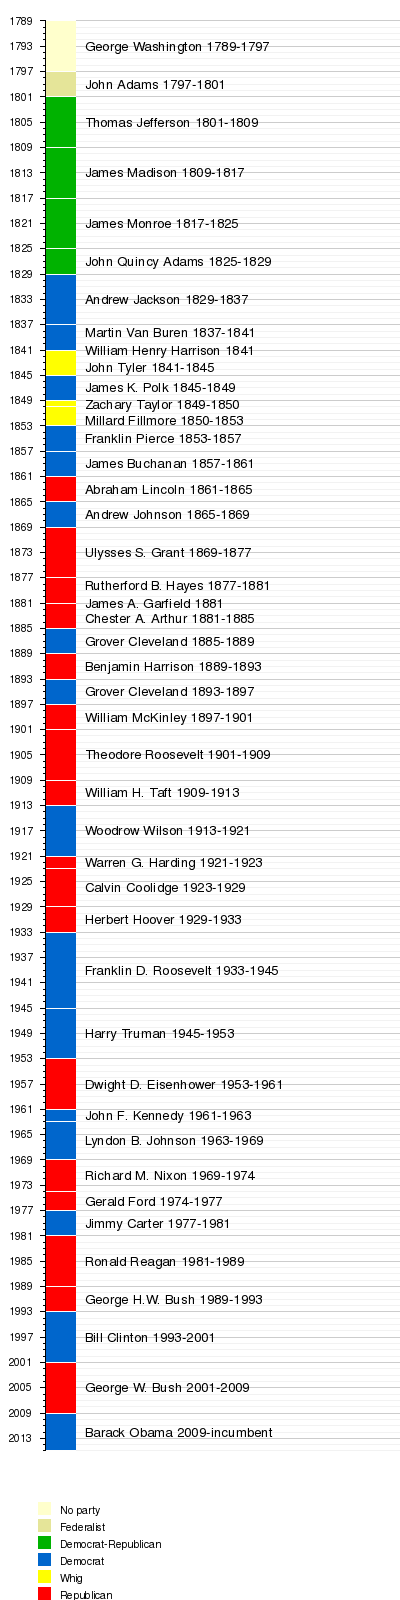 Lists Of Fictional Presidents Of The United States